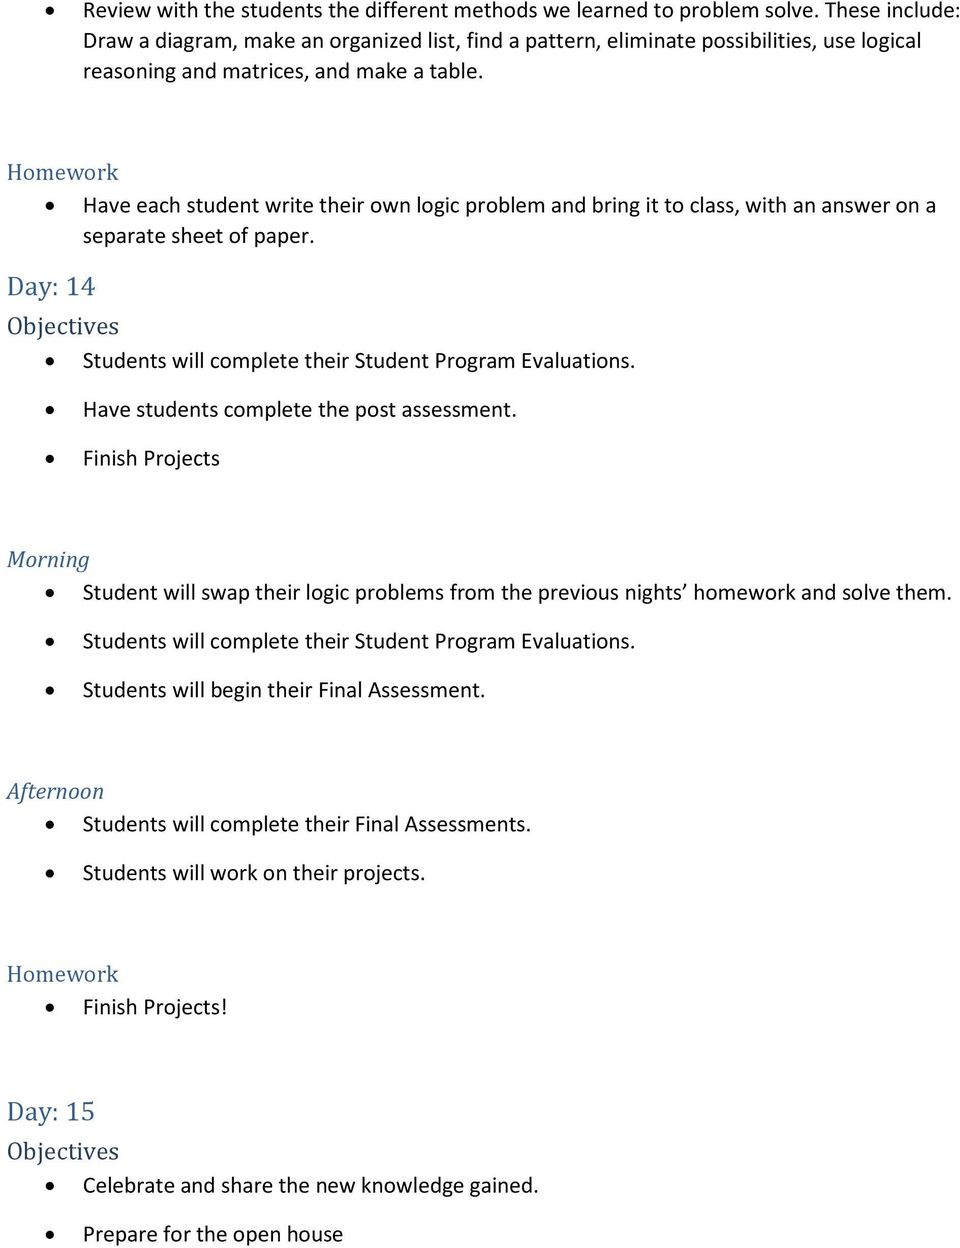 Have each student write their own logic problem and bring it to class, with an answer on a separate sheet of paper. Day: 14 Students will complete their Student Program Evaluations.